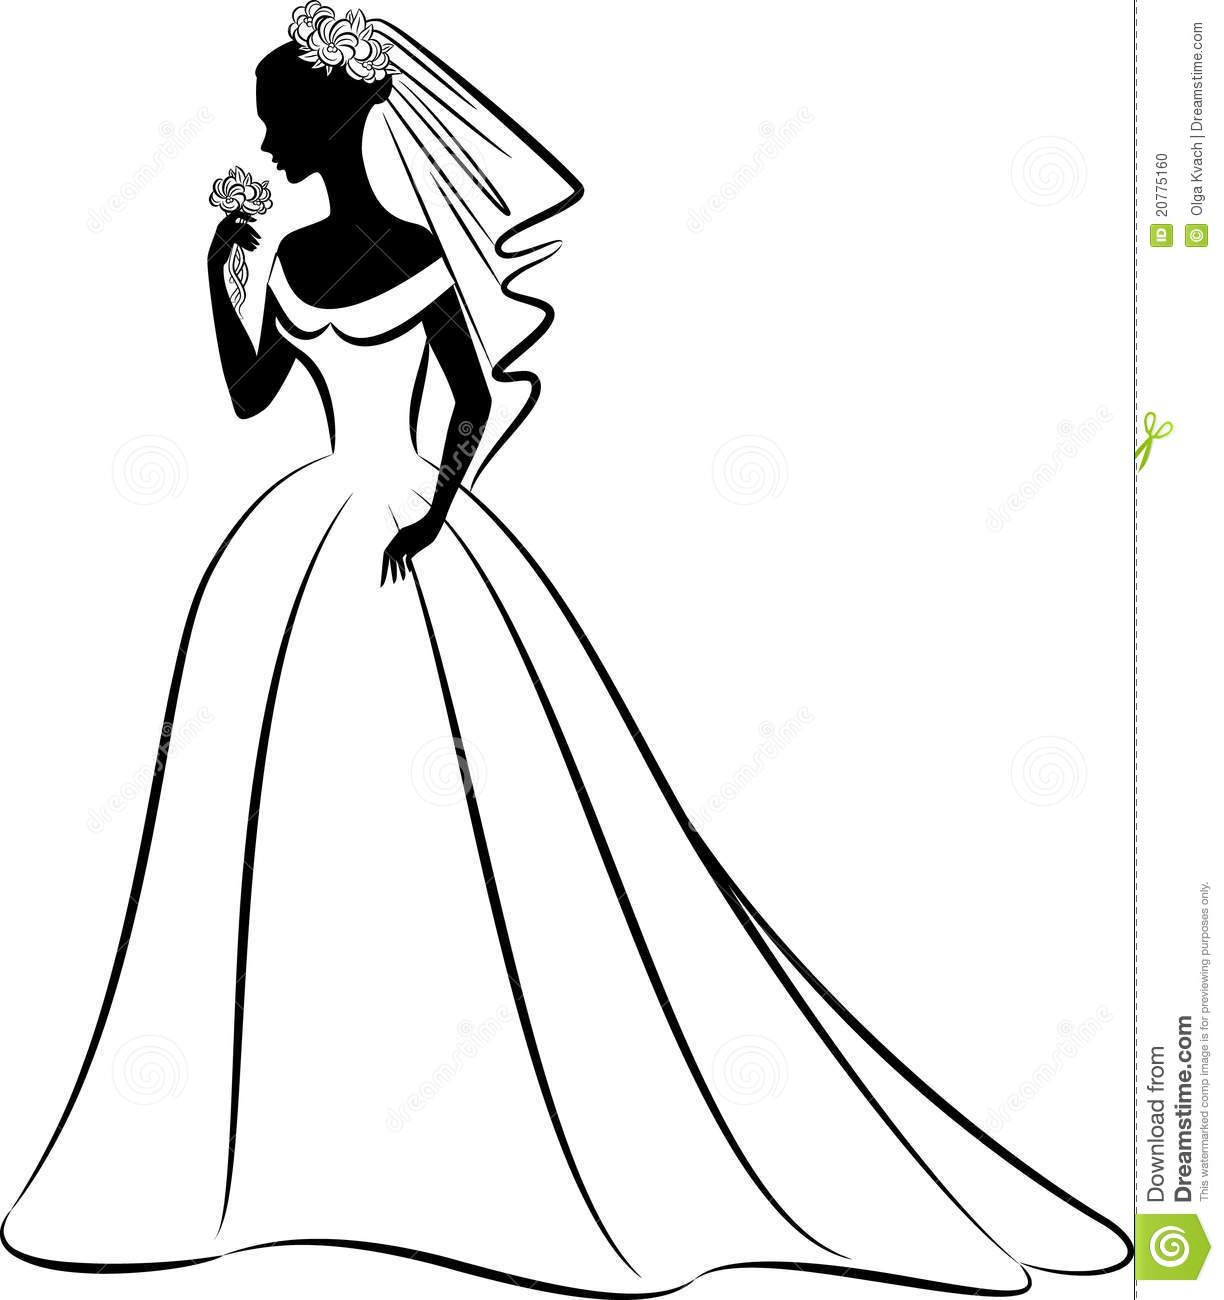 bridal clip art black and white - Yahoo Image Search Results ...